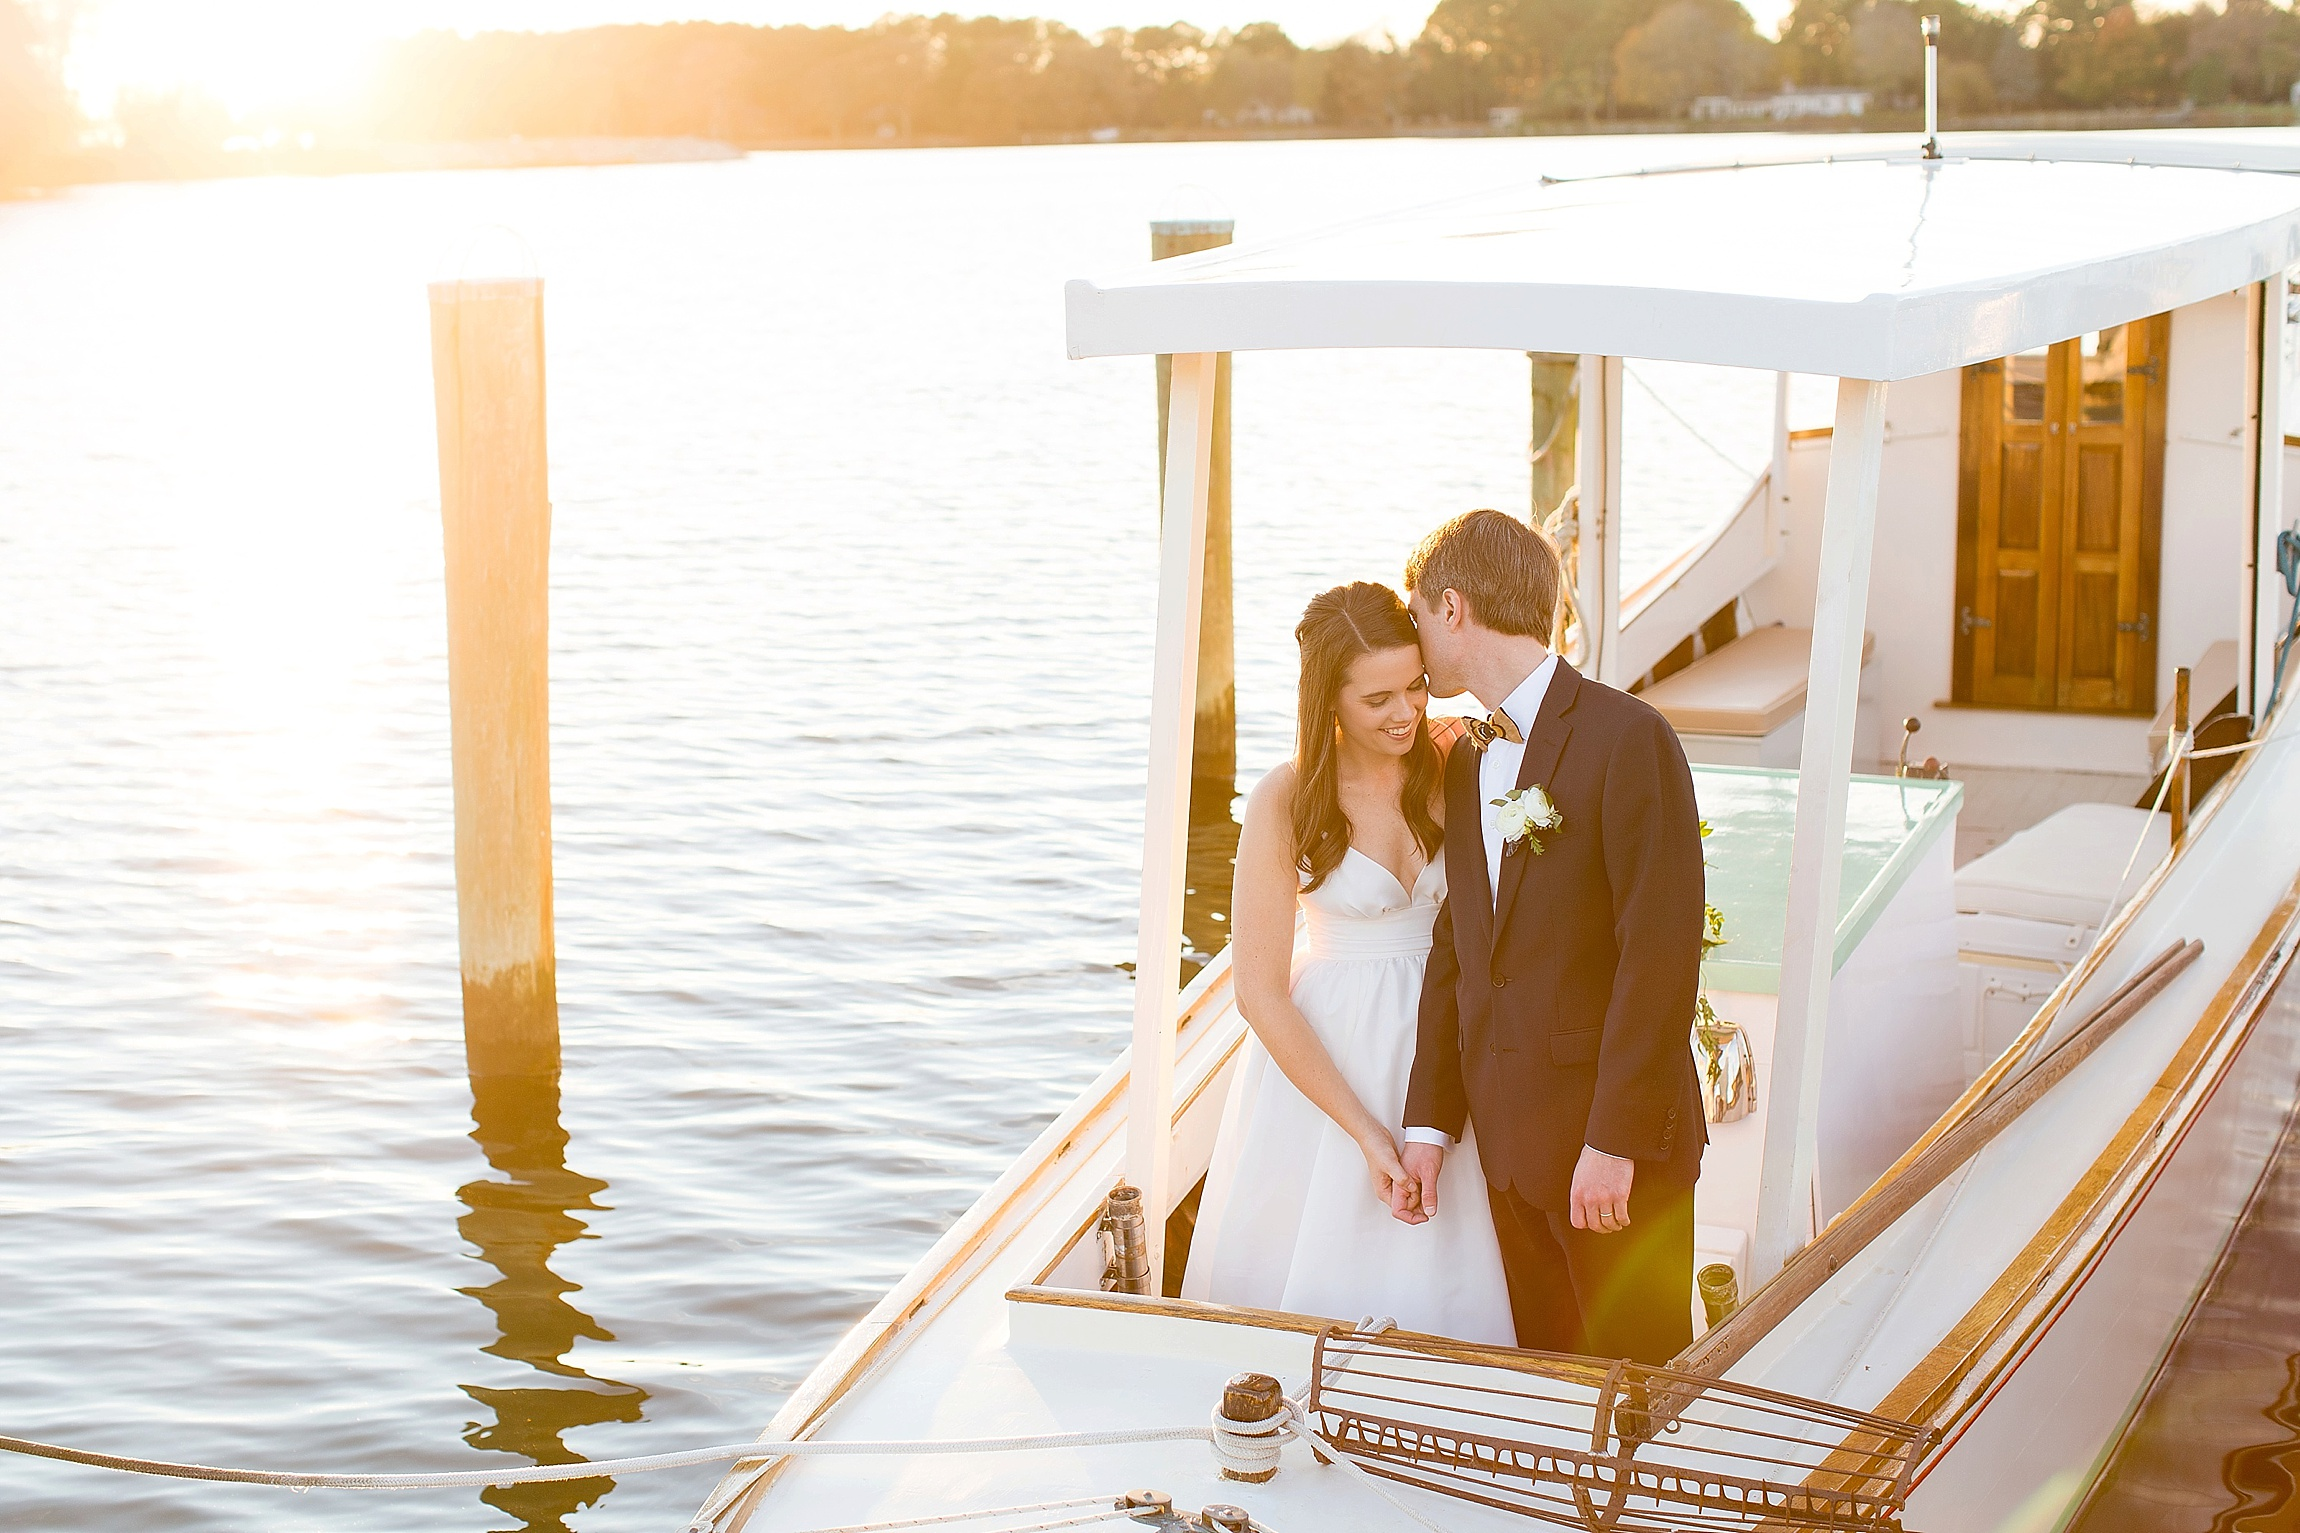 a bride and a groom kiss on a small boat at sunset